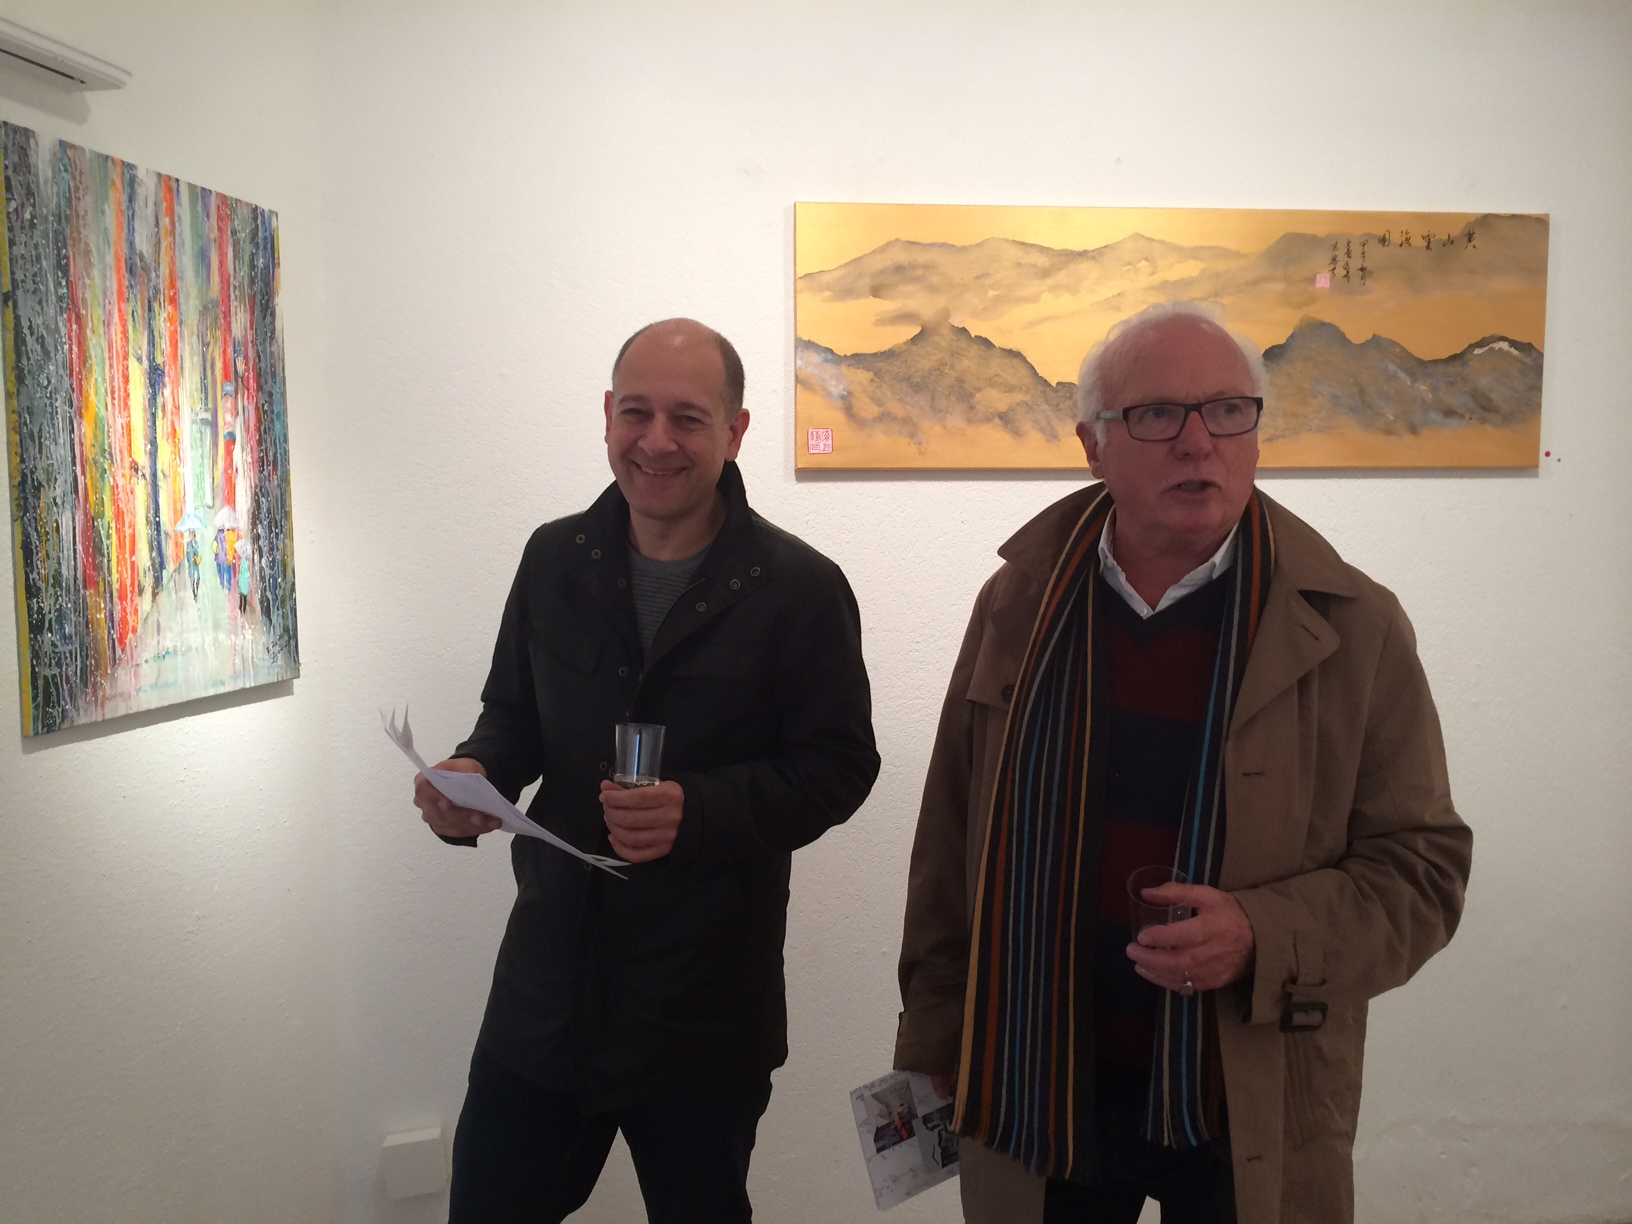 DAVID MA ART- EXHIBITION, CASA DEL ARTE, 18.-23.11.14